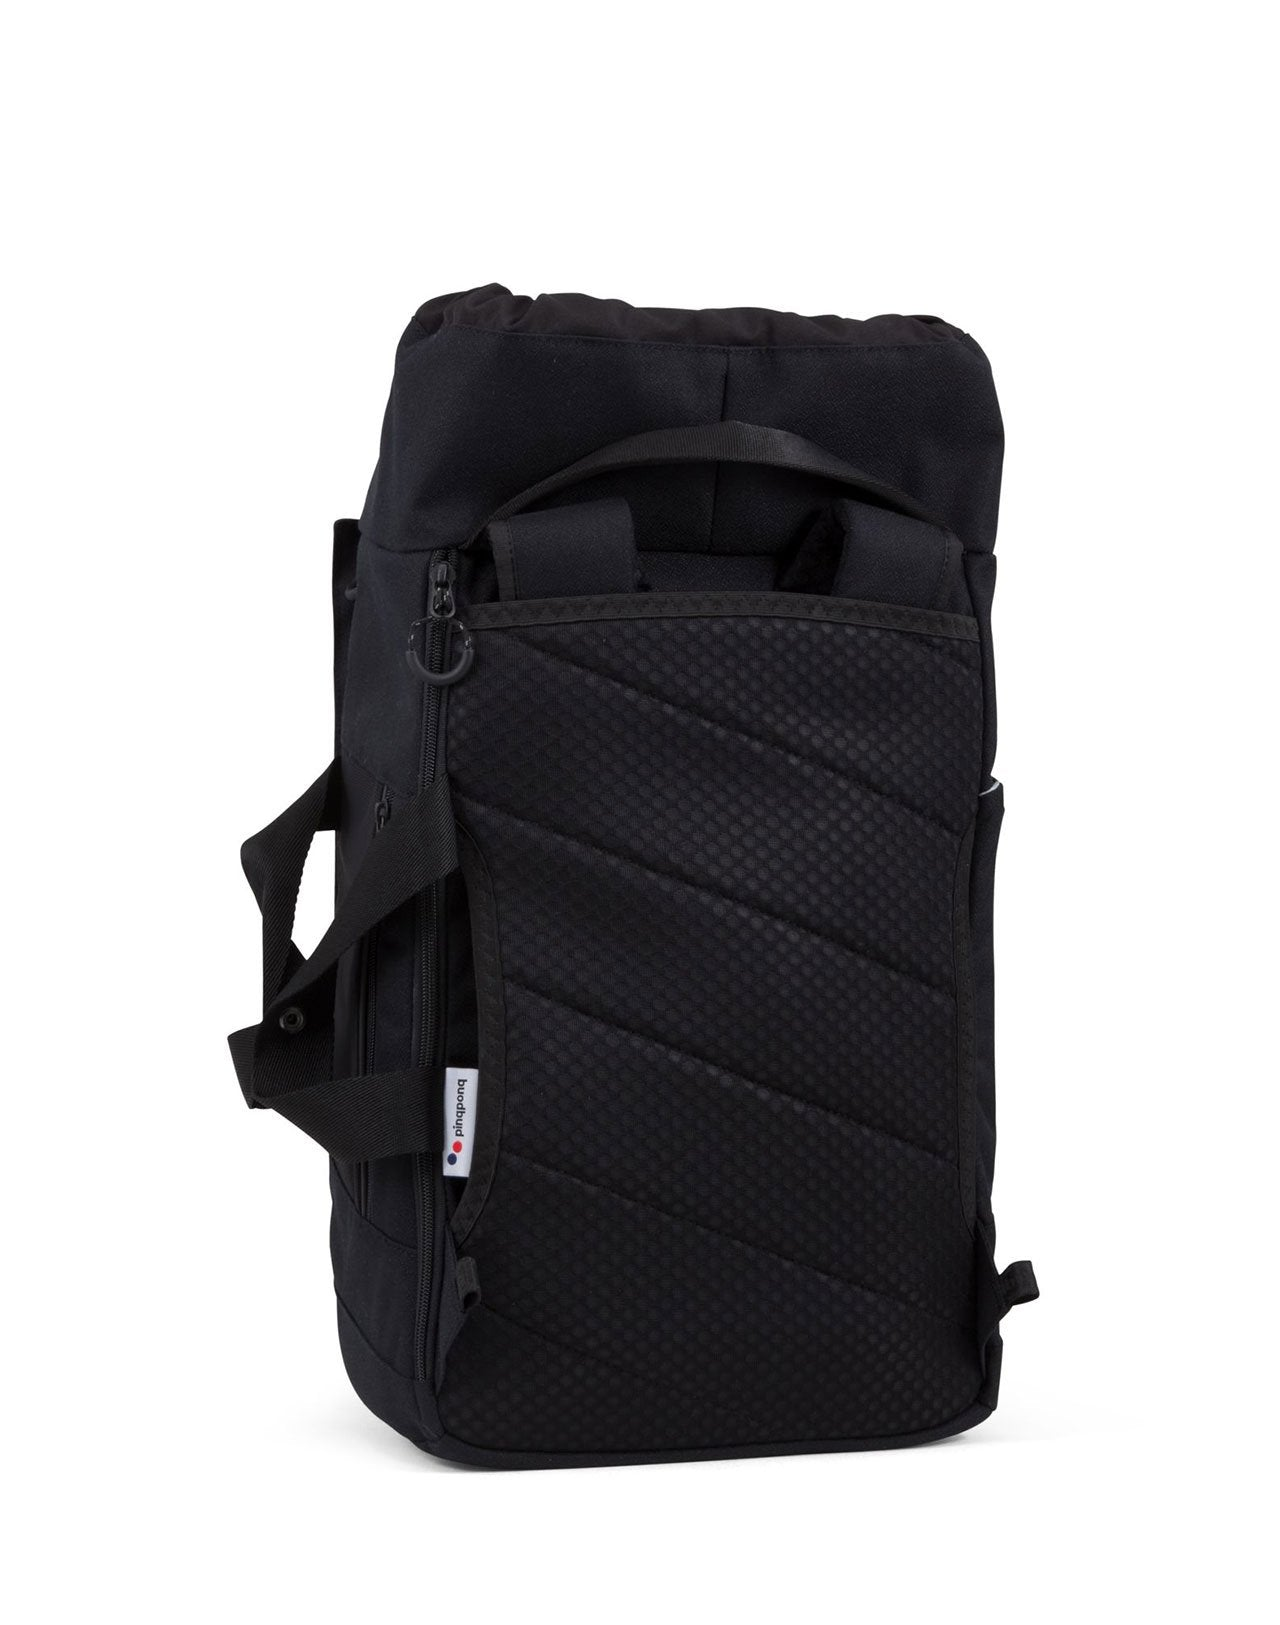 Blok Medium Black Pinqponq sac à dos noir